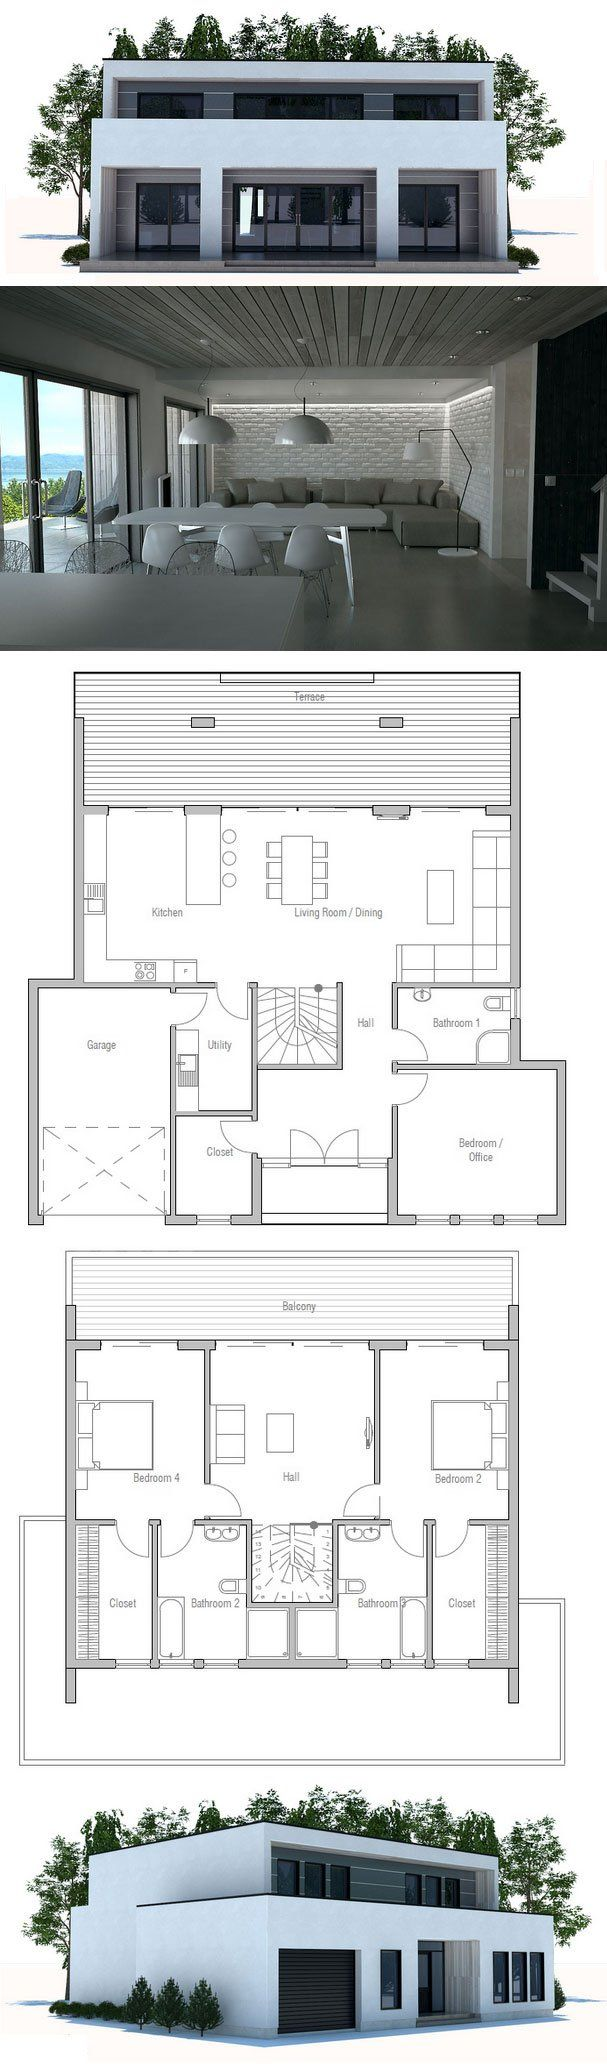 Contemporary House Design to small lot. Floor Plan from ConceptHome.com